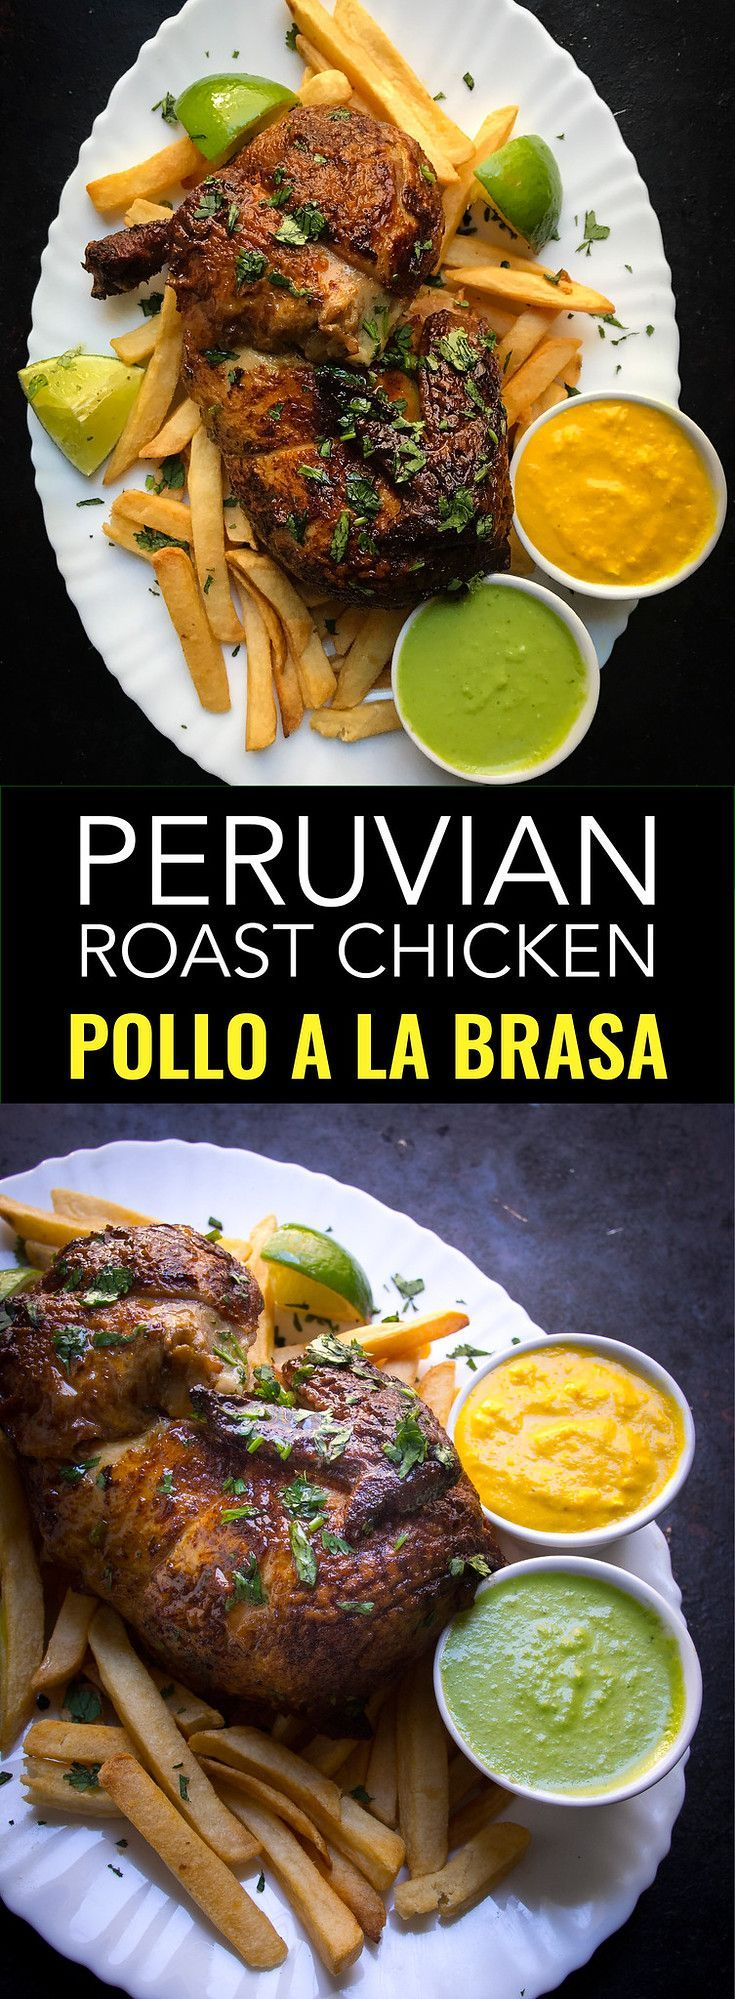 Pollo a la brasa is an easy Peruvian chicken recipe with incredible sauces aji verde and aji amarillo.